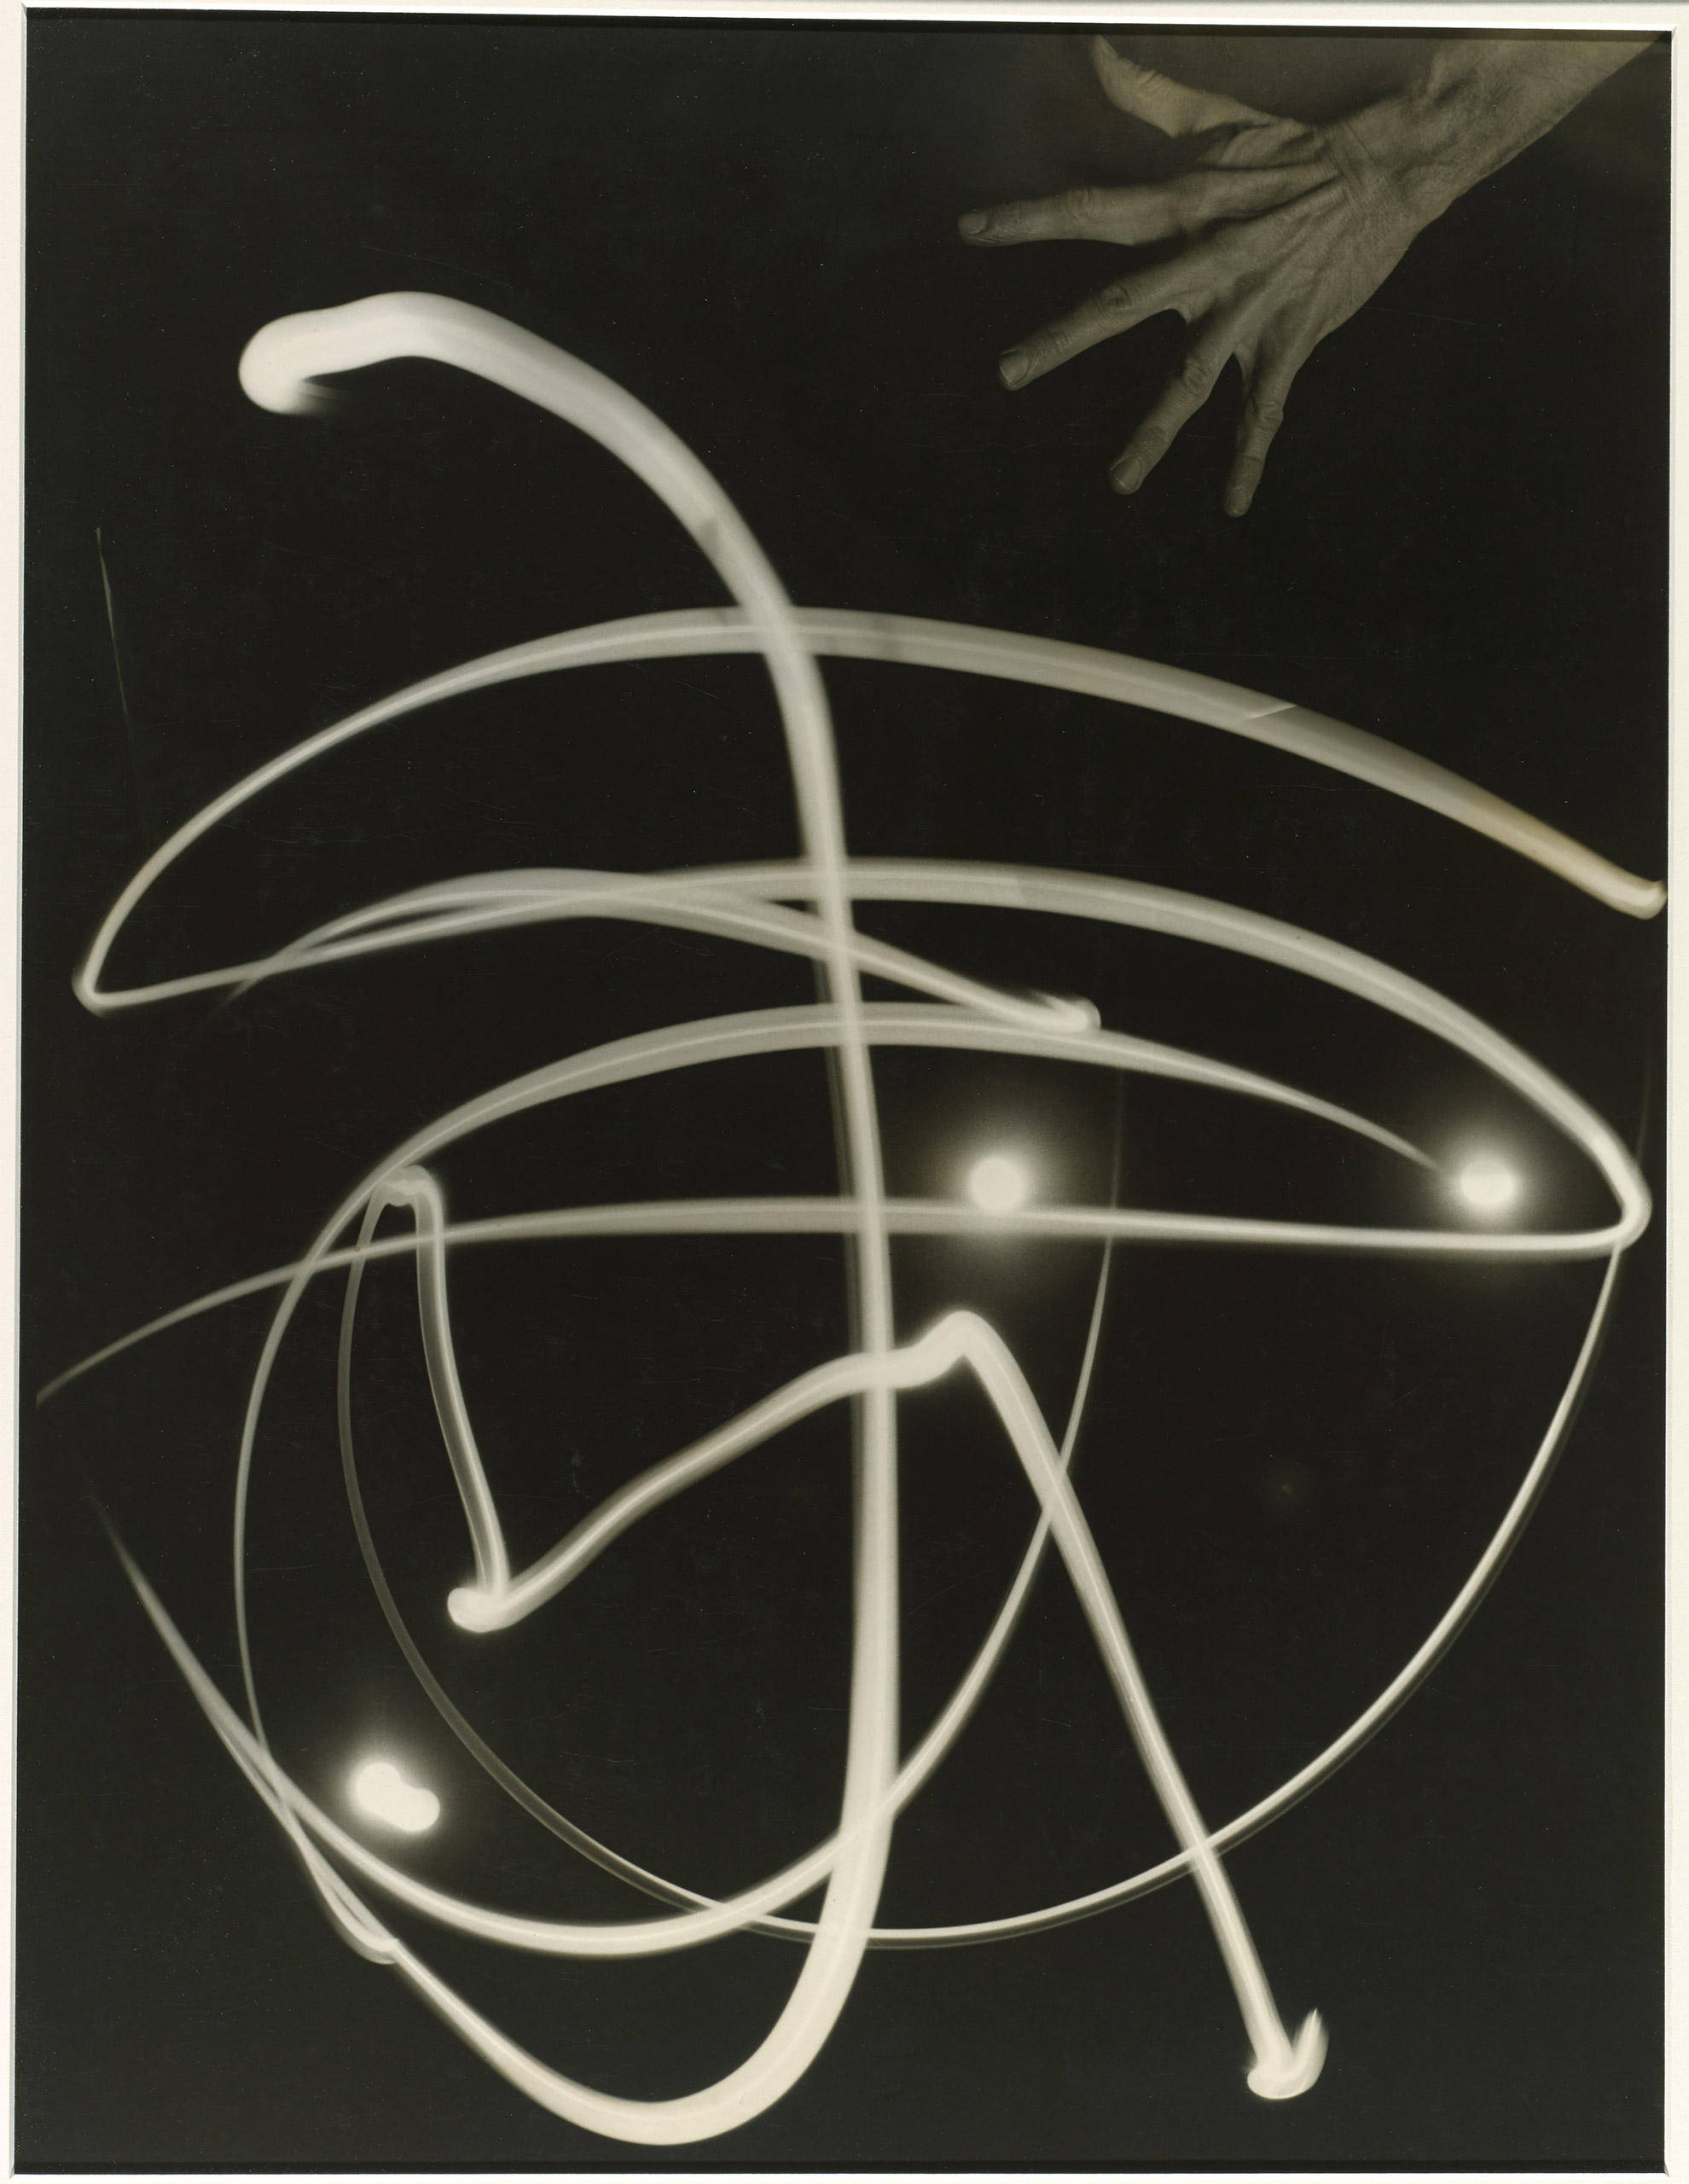 Pure Energy and Neurotic Man, 1940 - 1941                     Reproduced courtesy of the Barbara and Willard Morgan Photographs                     and Papers, UCLA Department of Special Collections / The J. Paul Getty Museum, Los Angeles